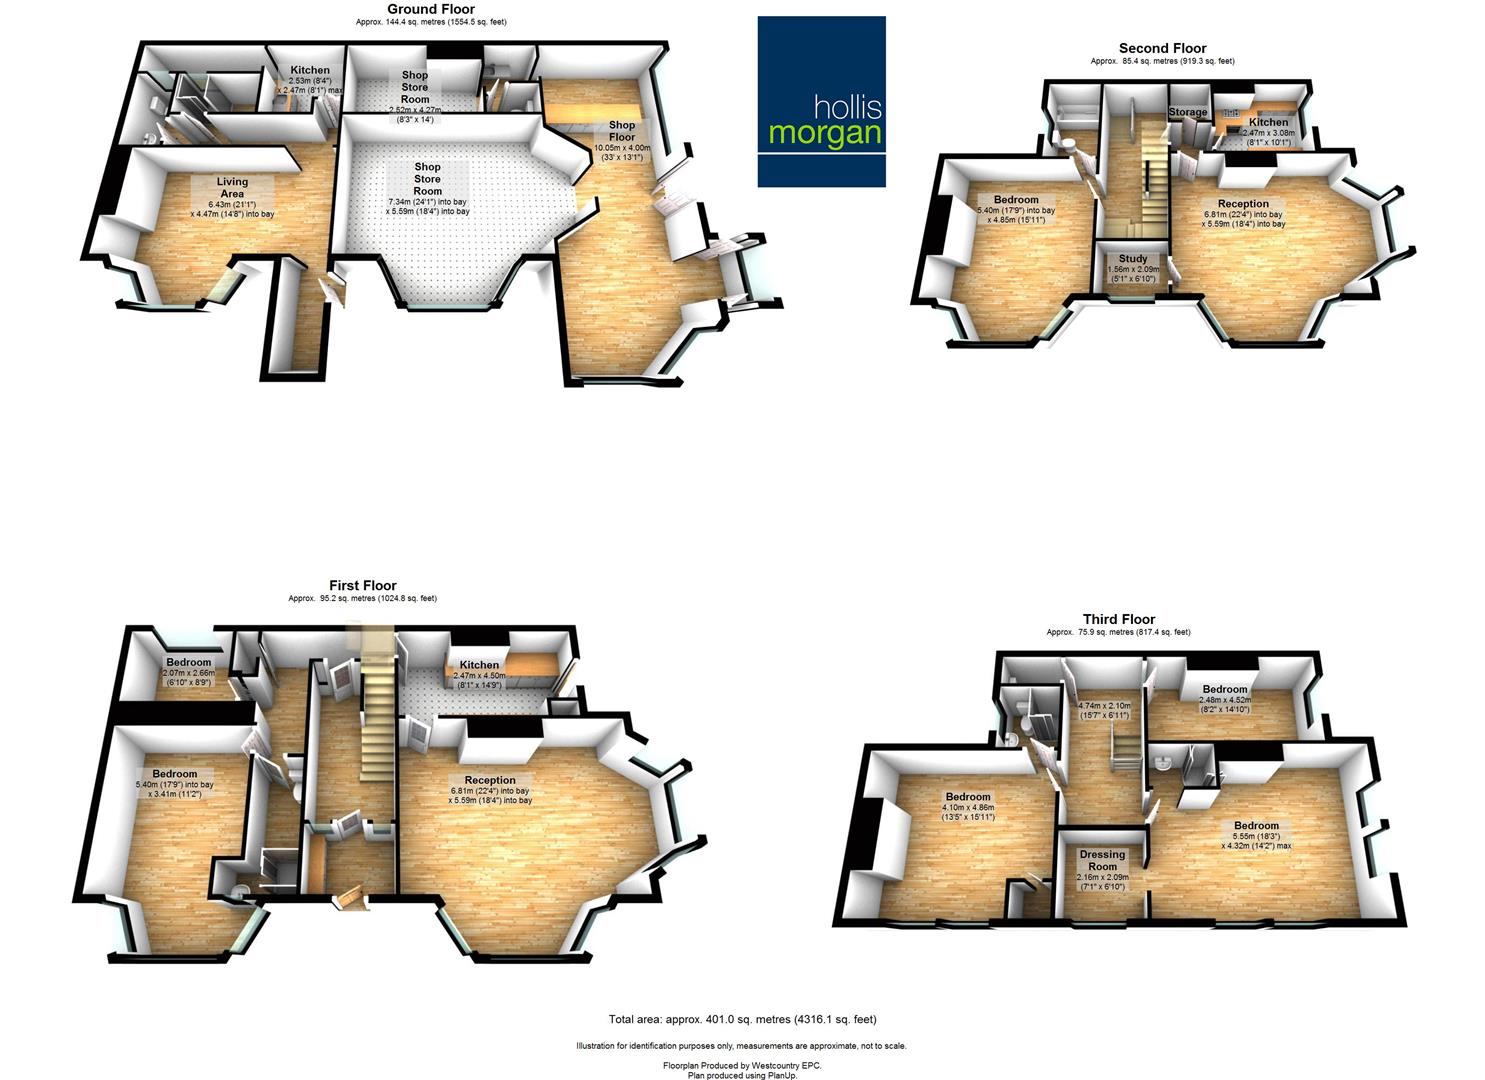 Floorplans For 2 Victoria Square, Weston-Super-Mare